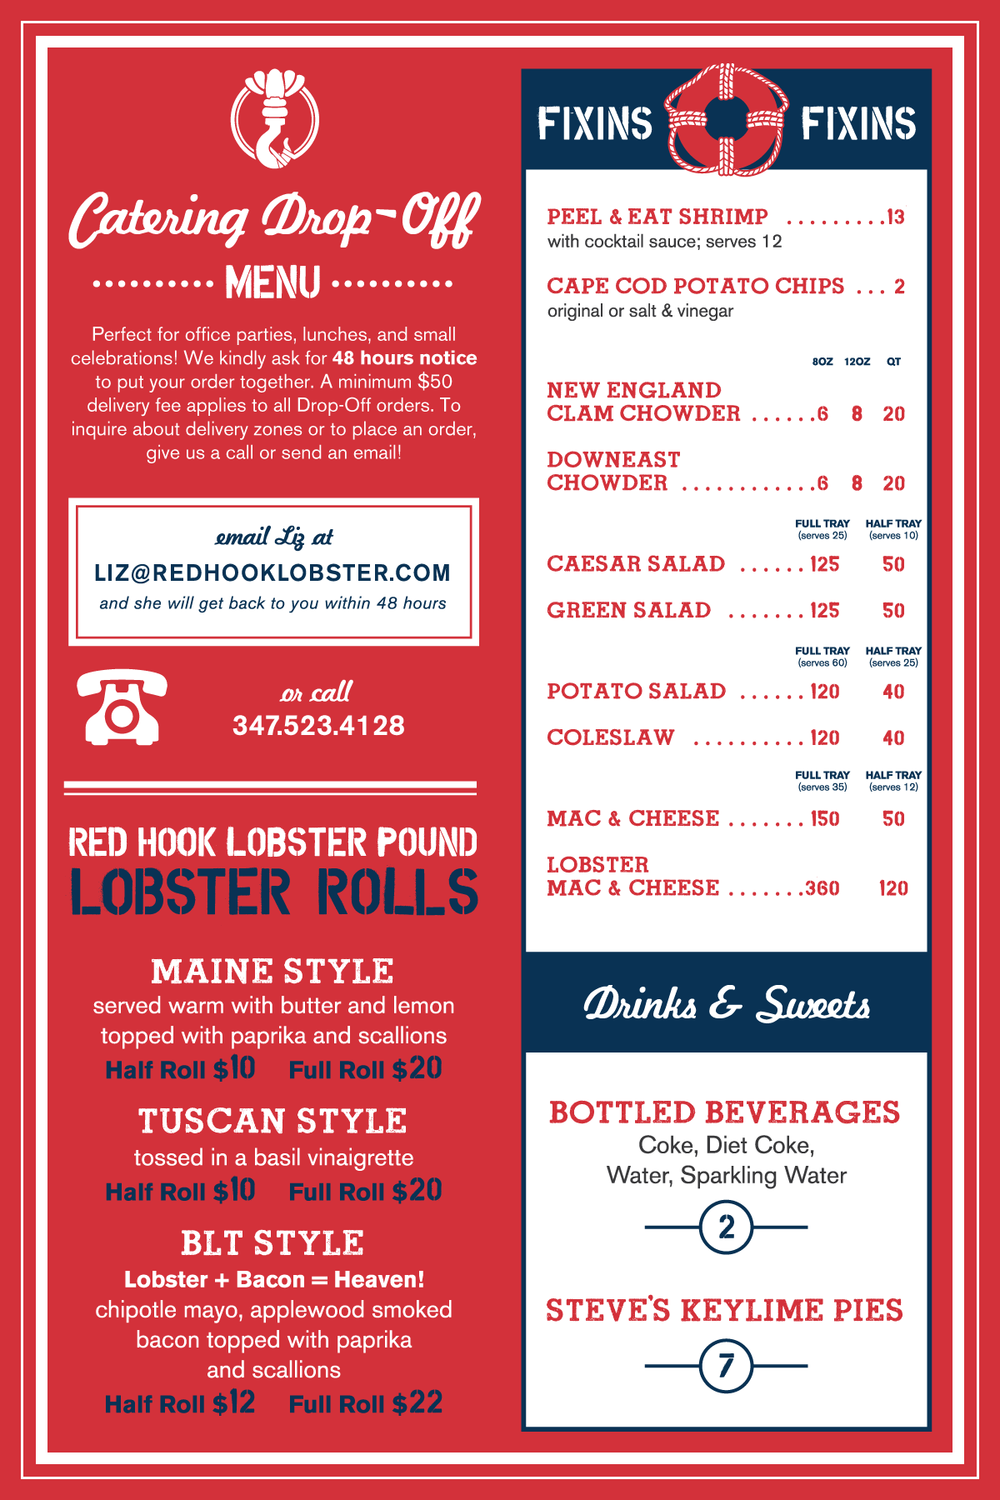 Catering Drop-Off Menu: Lobster Rolls, Fixins, Drinks and Sweets